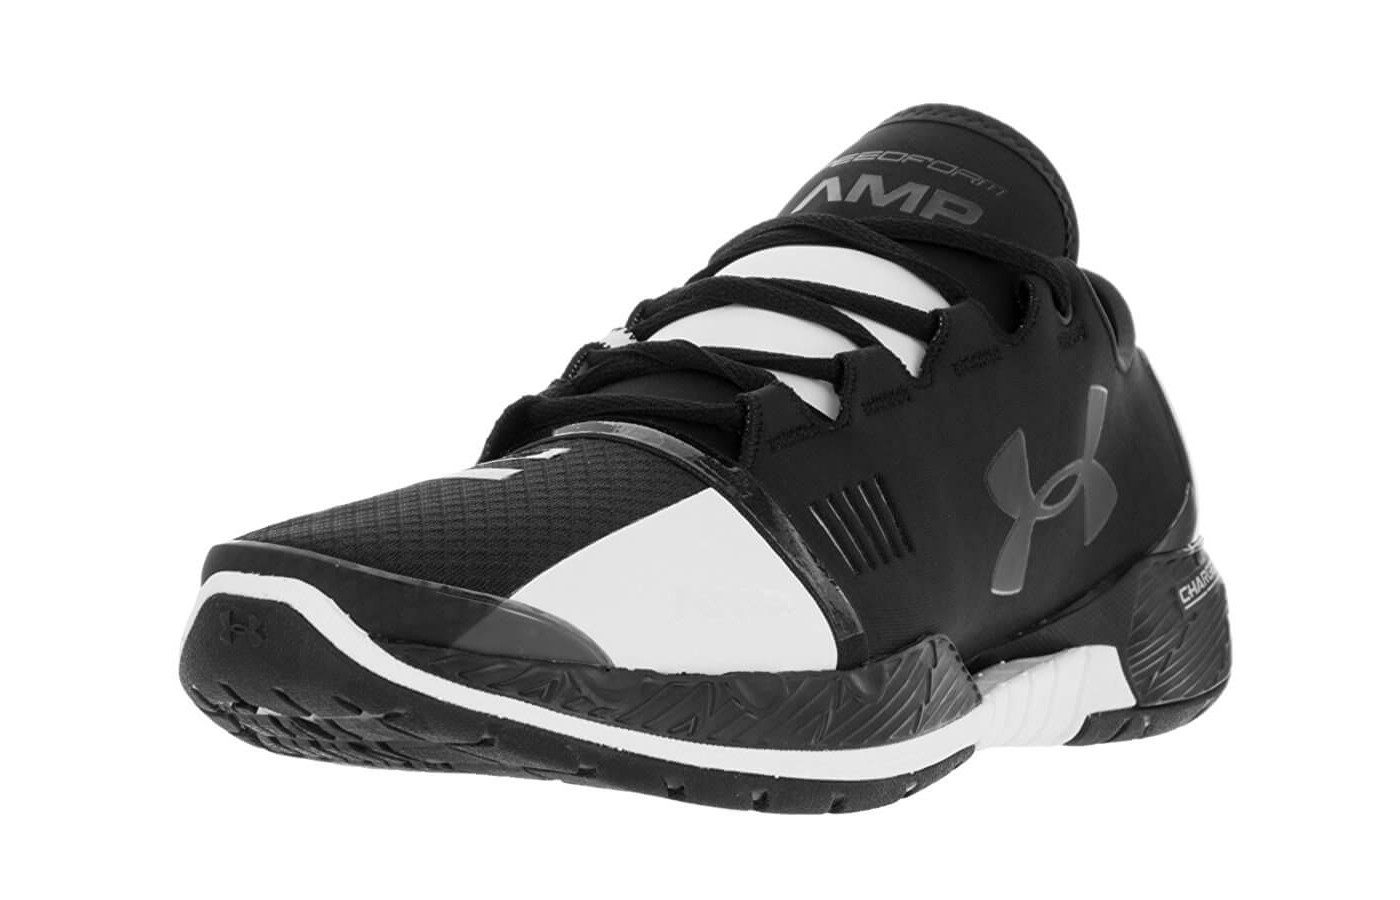 Under Armour SPeedform AMP is a versatile shoe that can be used for running or cross training.